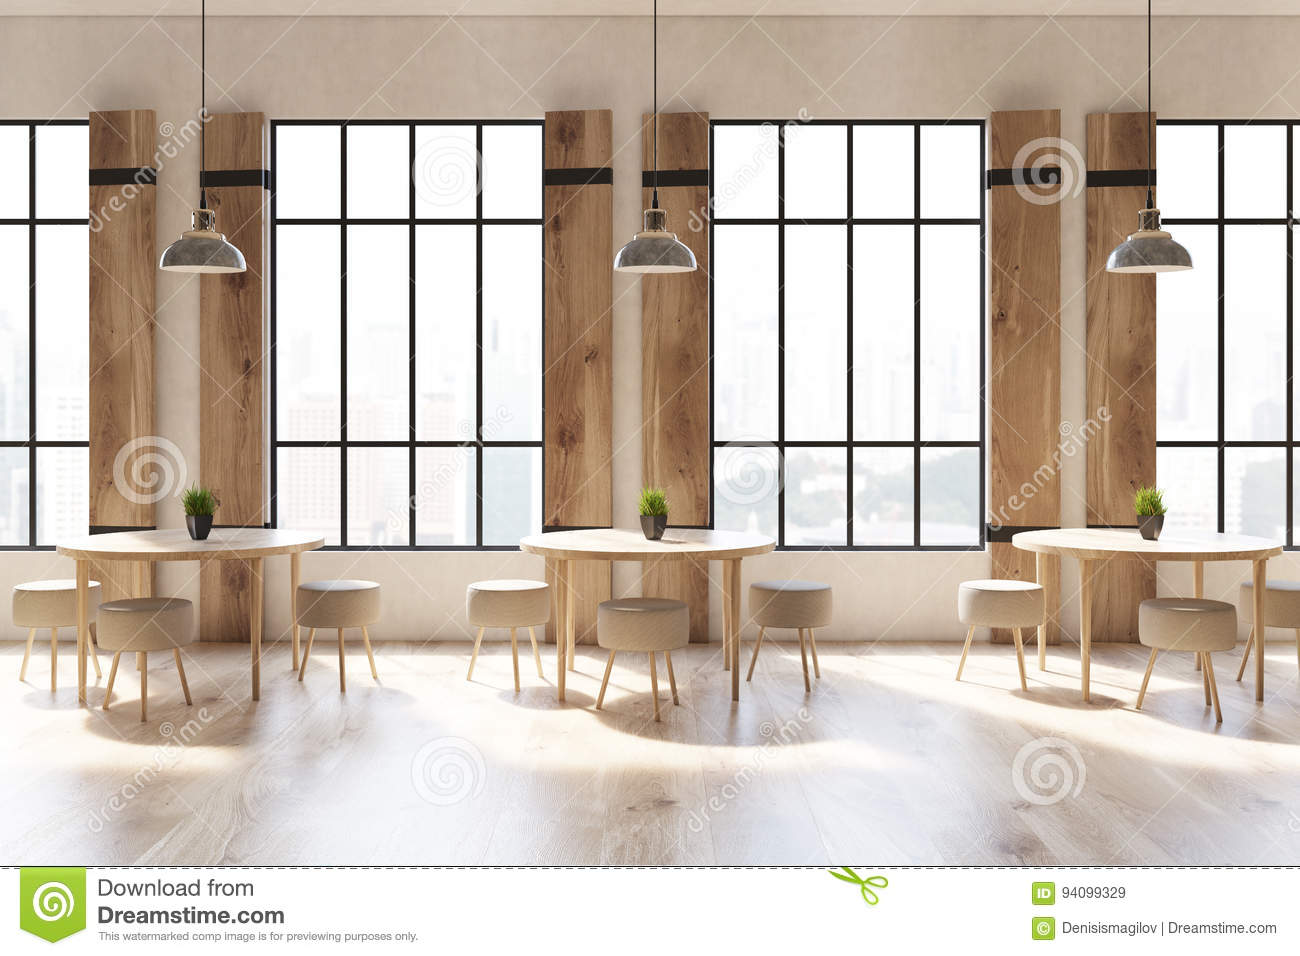 shutters cafe interior close up stock illustration image 94099329 - Concrete Cafe Interior